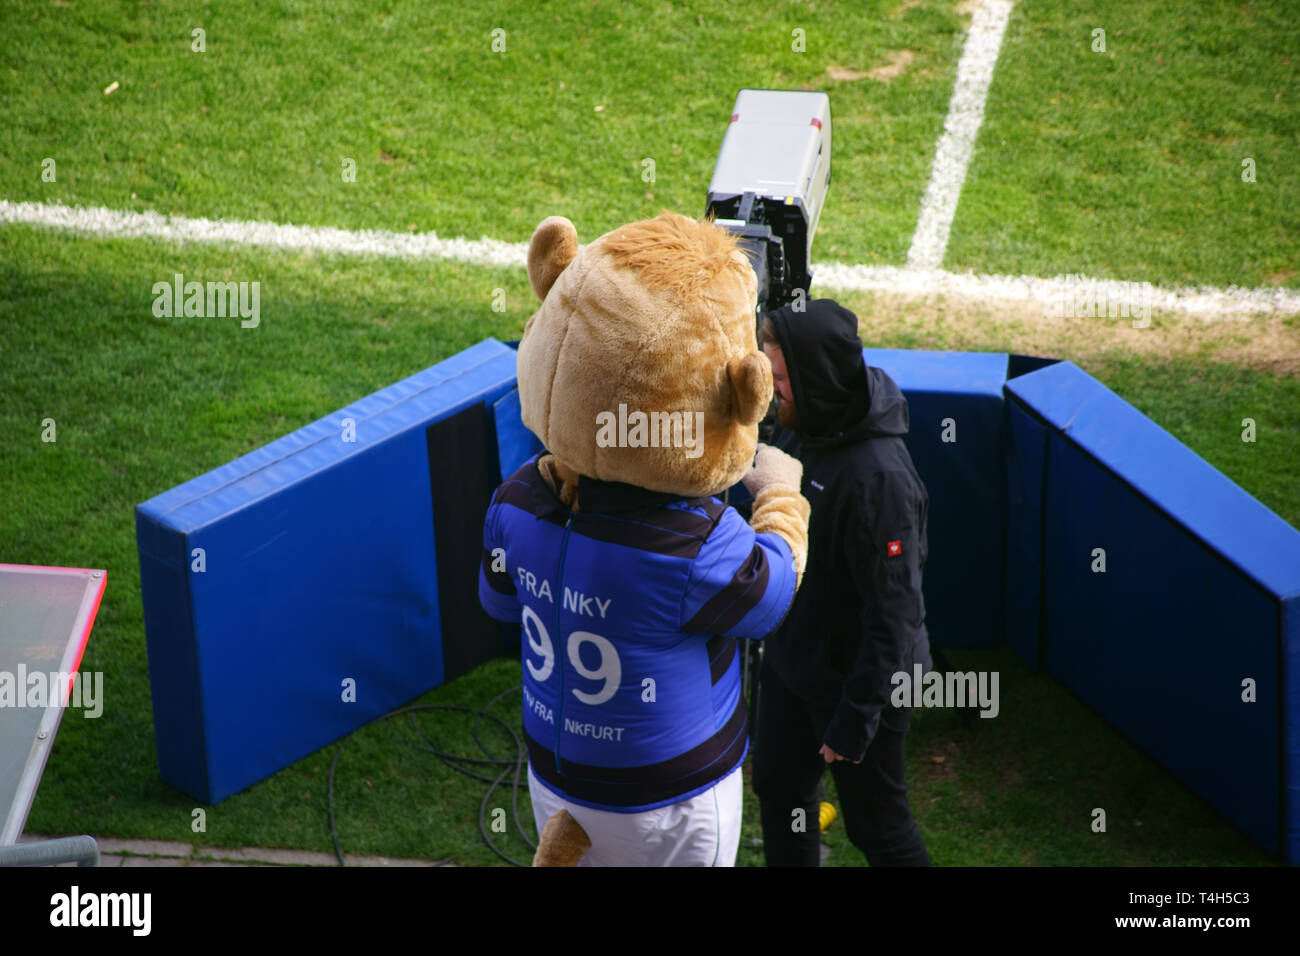 Frankfurt, Germany - March 24, 2019: The mascot Franky of the football club FSV Frankfurt makes in a game of the Regional League Southwest filming on  - Stock Image